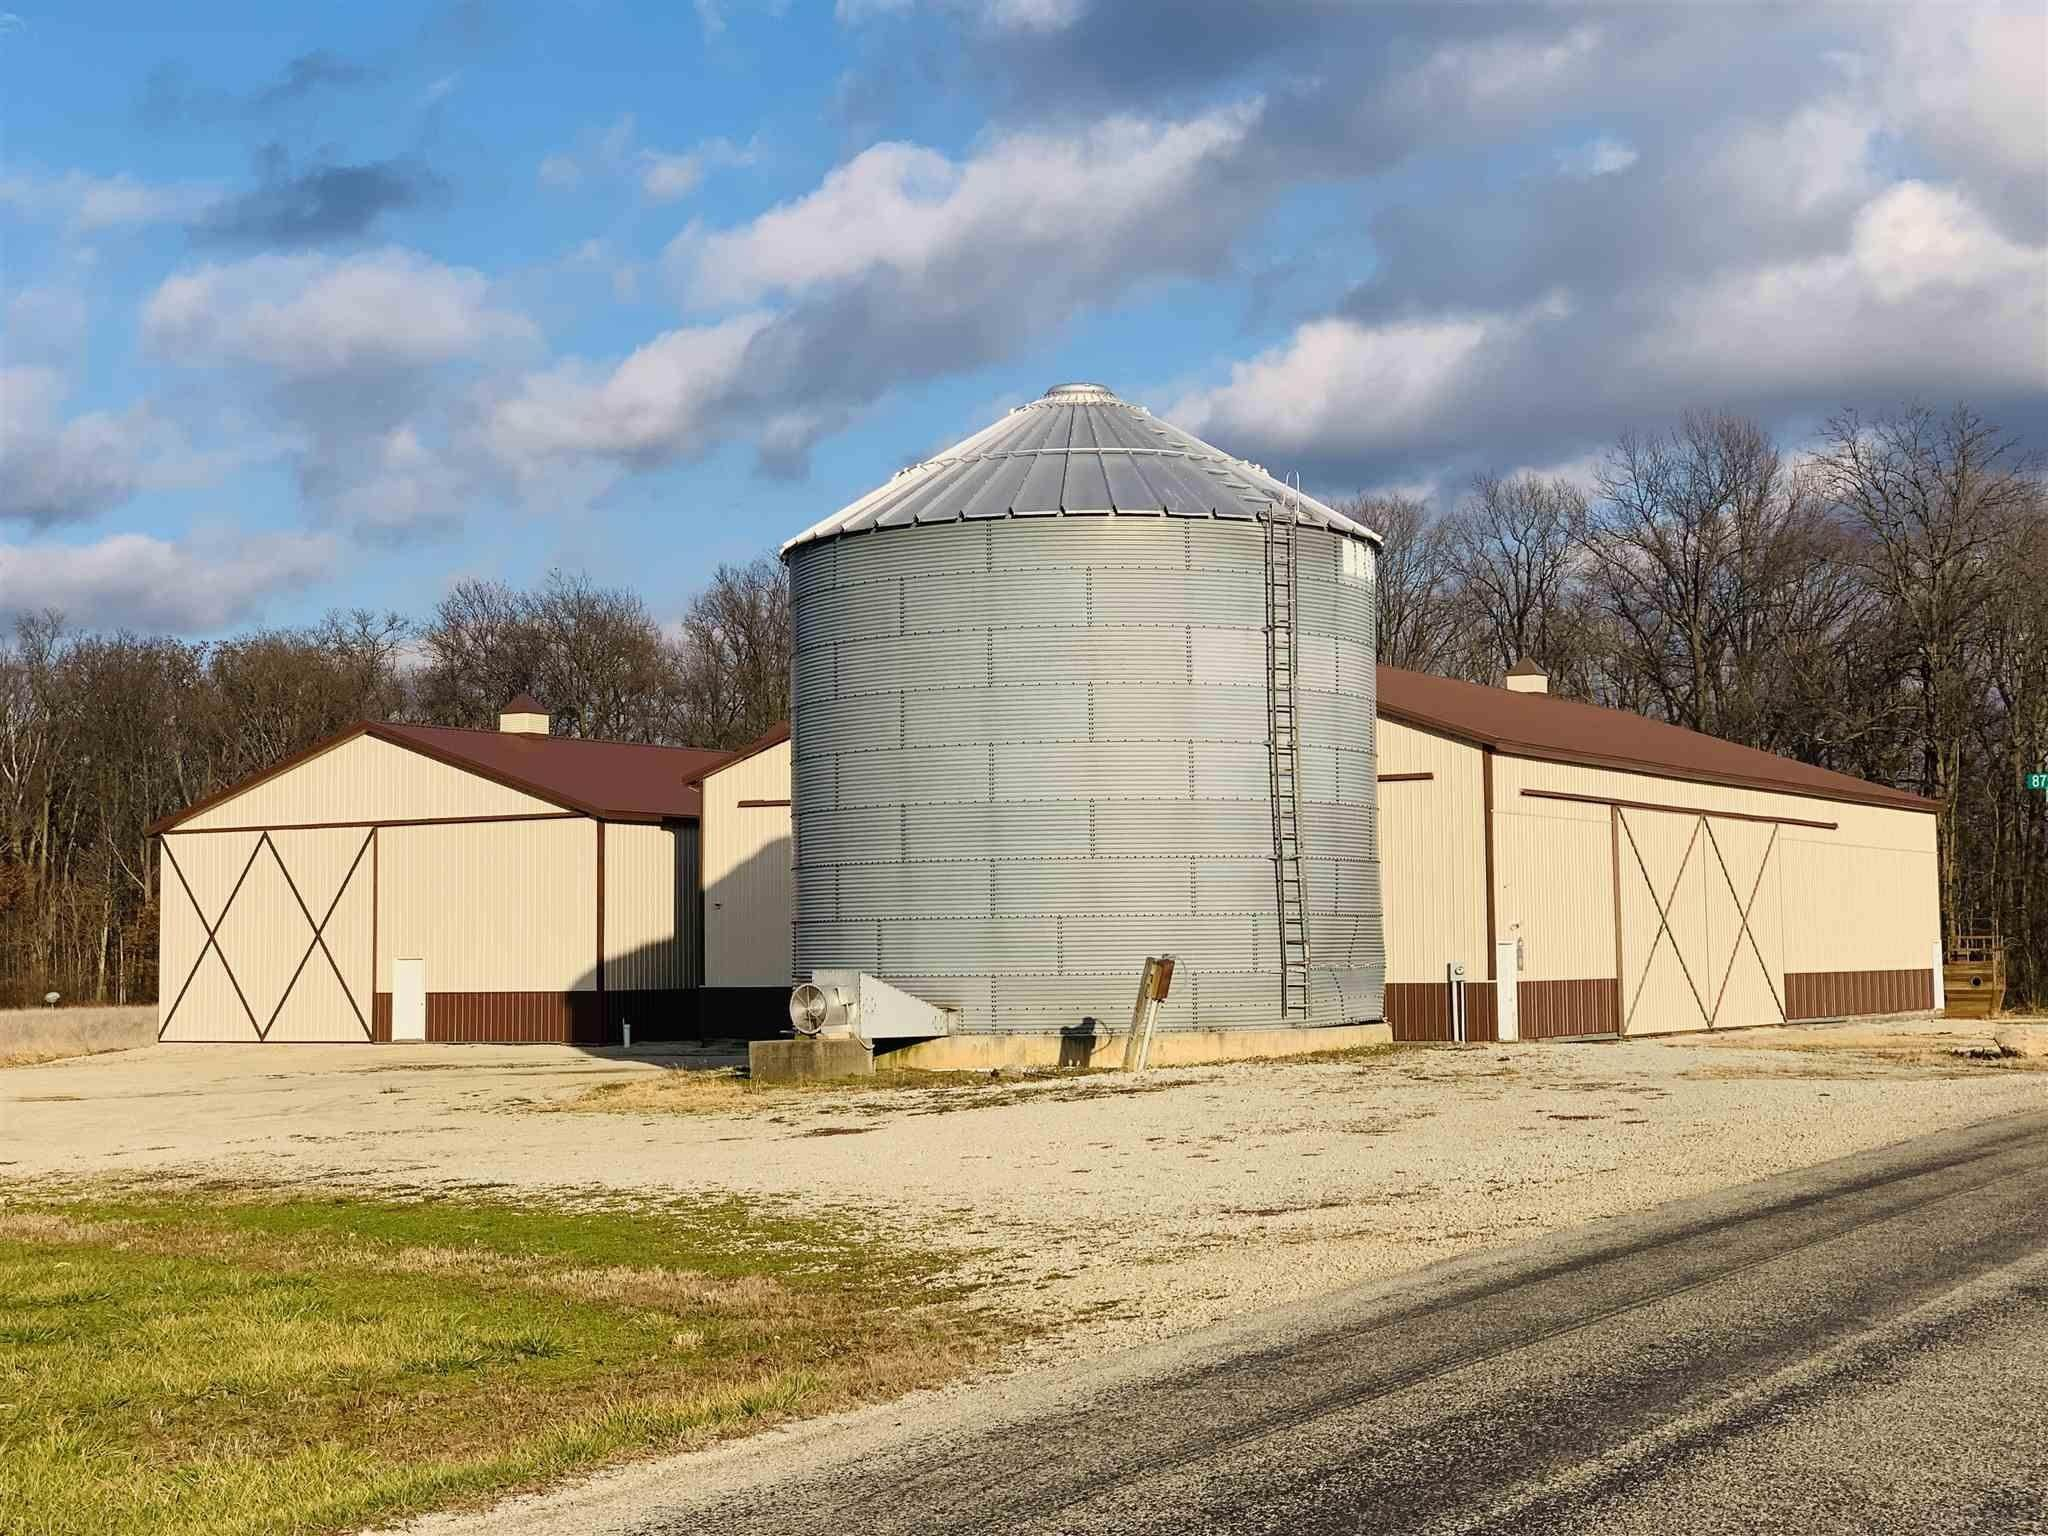 Agricultural Land for Sale at 8715 E 200 N-5 Dunkirk, Indiana 47336 United States